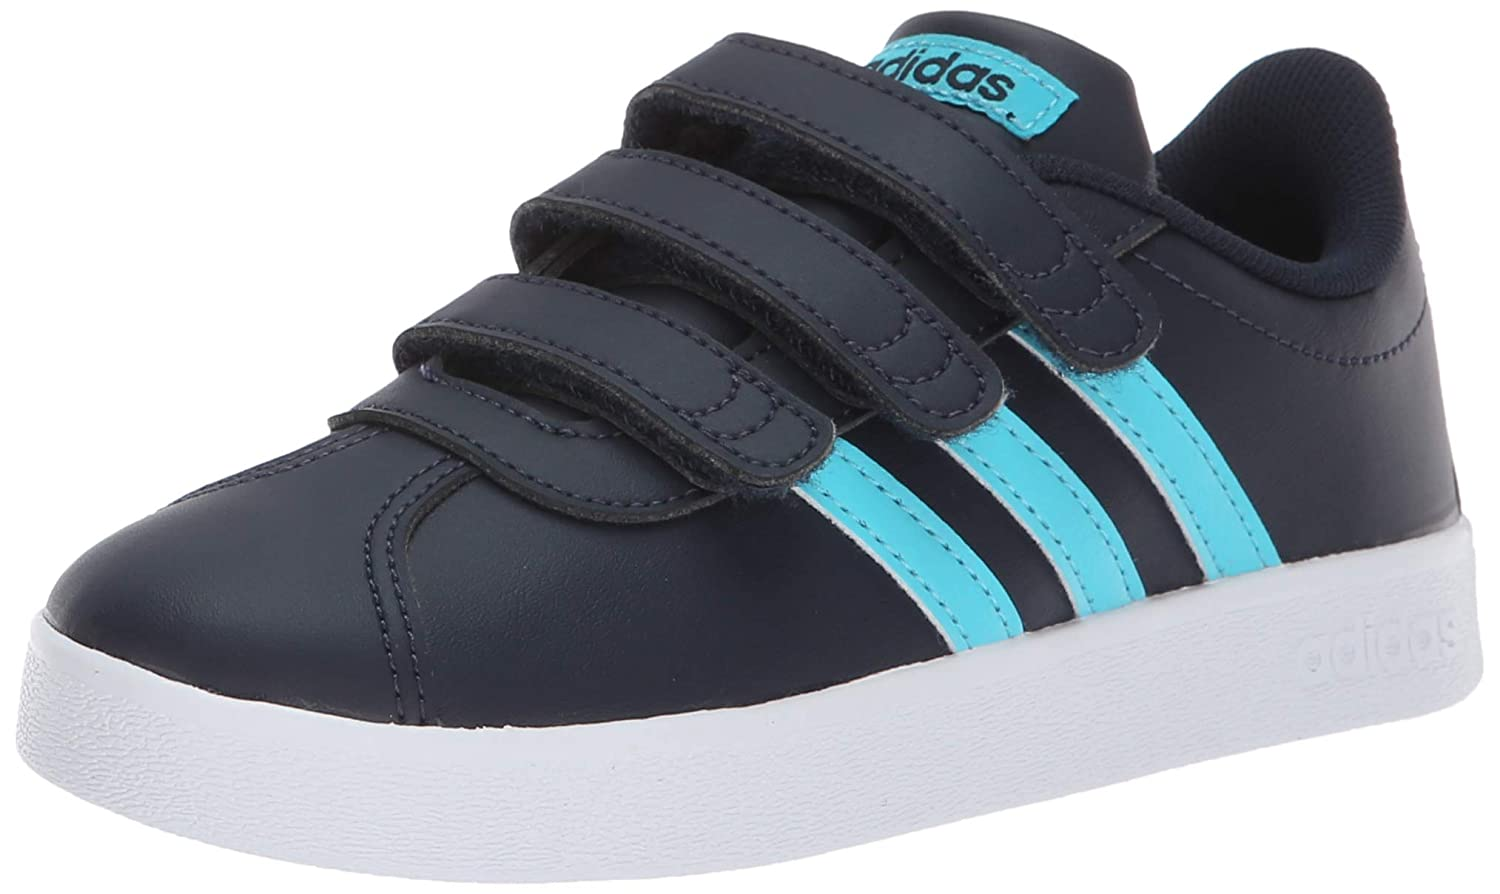 newest 67218 47cee Amazon.com   adidas Unisex Vl Court 2.0 CMF C Sneaker, Legend Ink Bright  Cyan White, 1 M US Little Kid   Sneakers